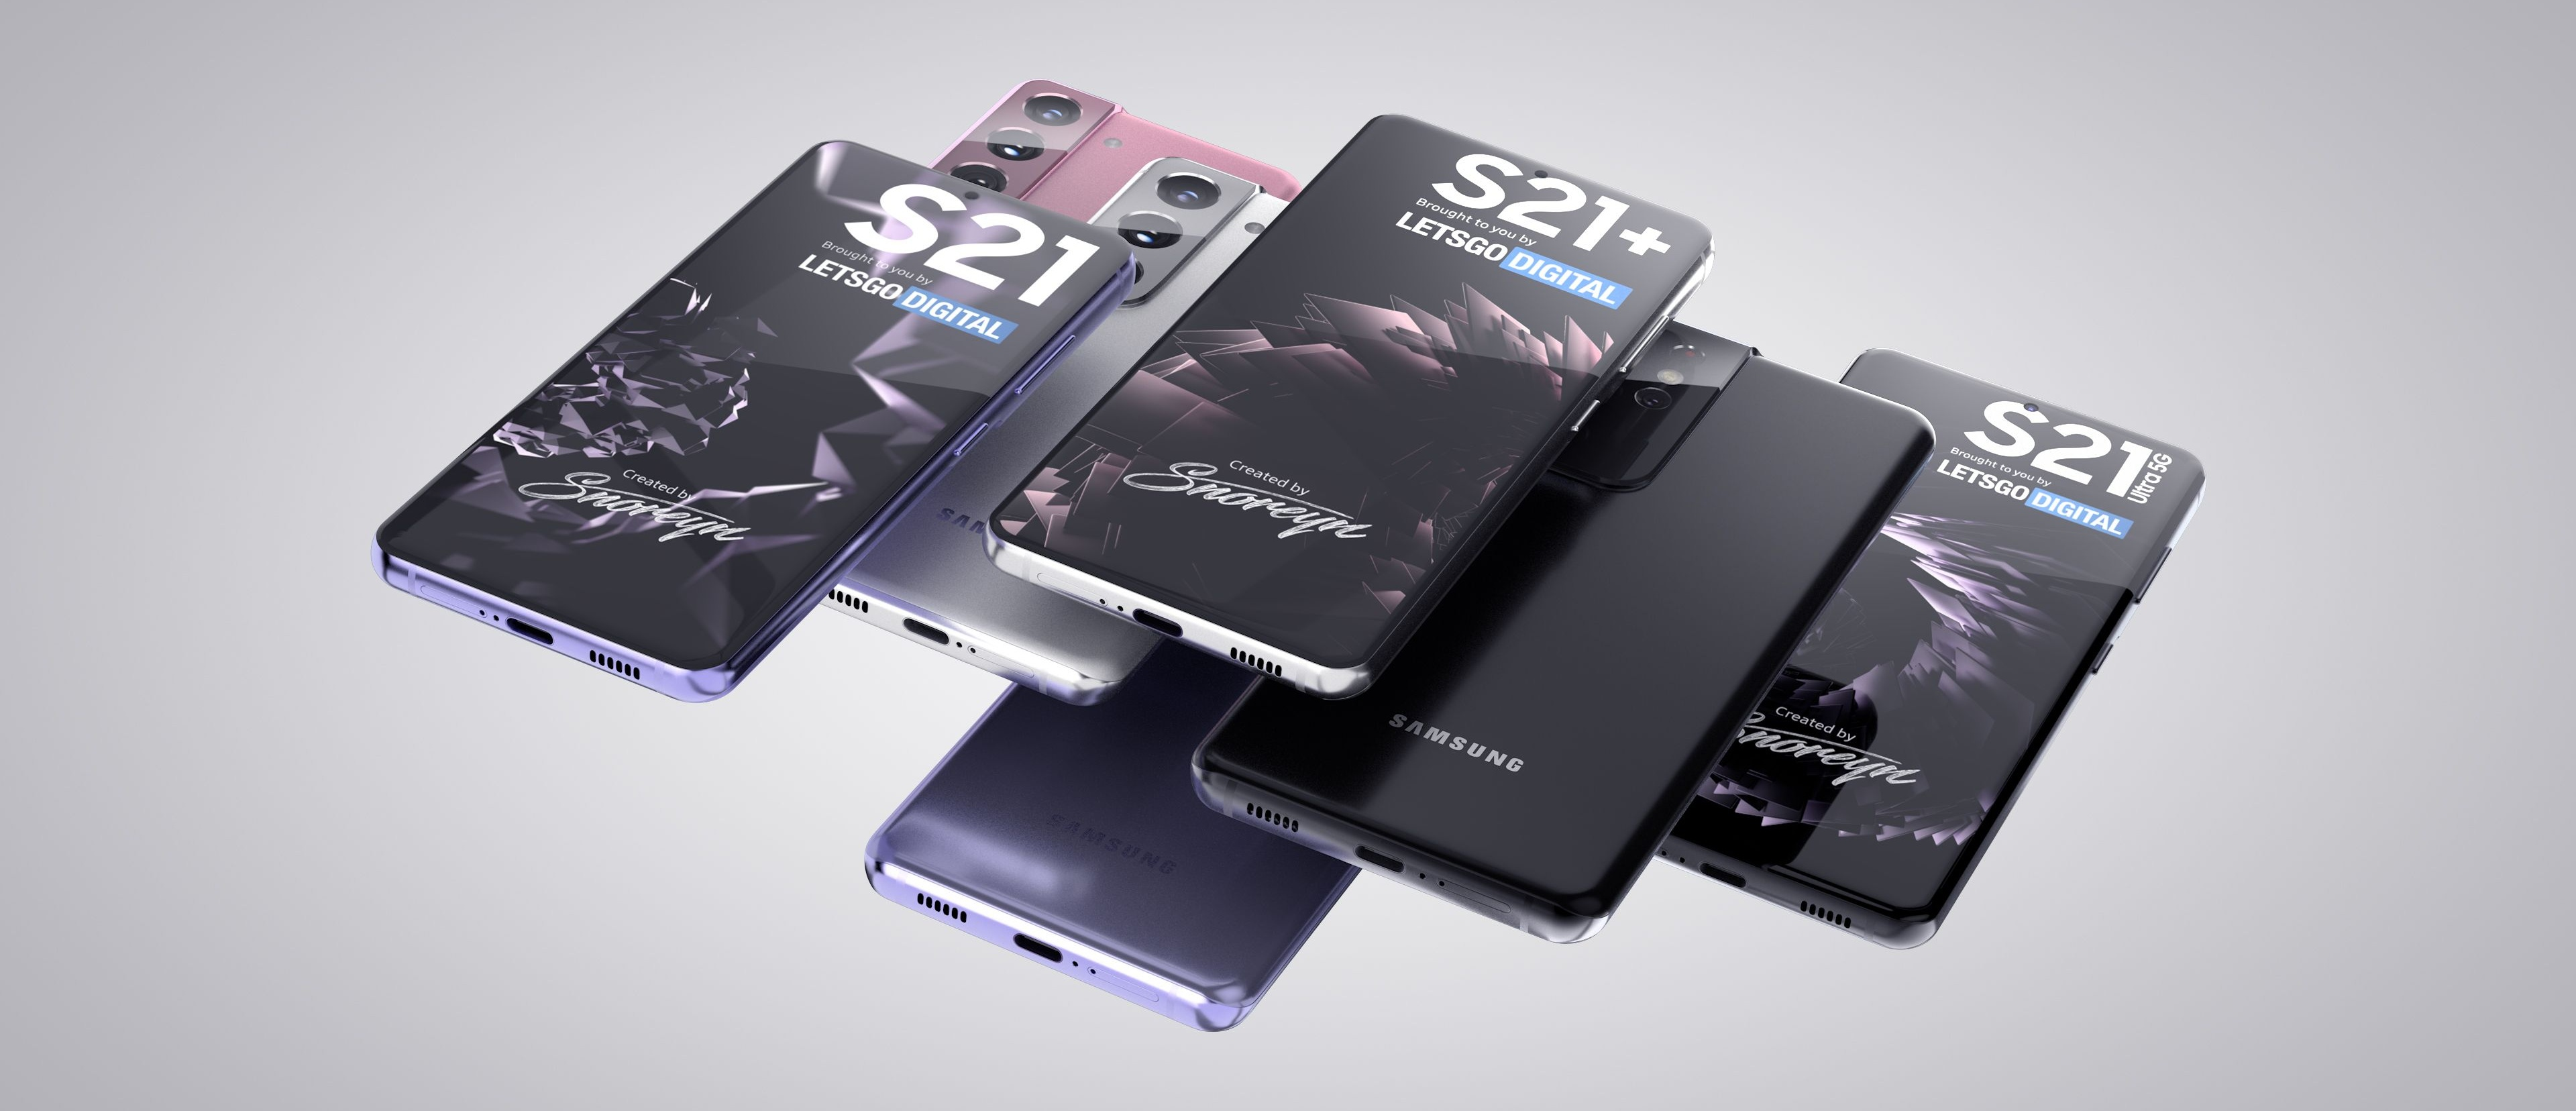 samsung-galaxy-s21-s21-and-s21-ultra-appear-in-lovely-high-quality-renders